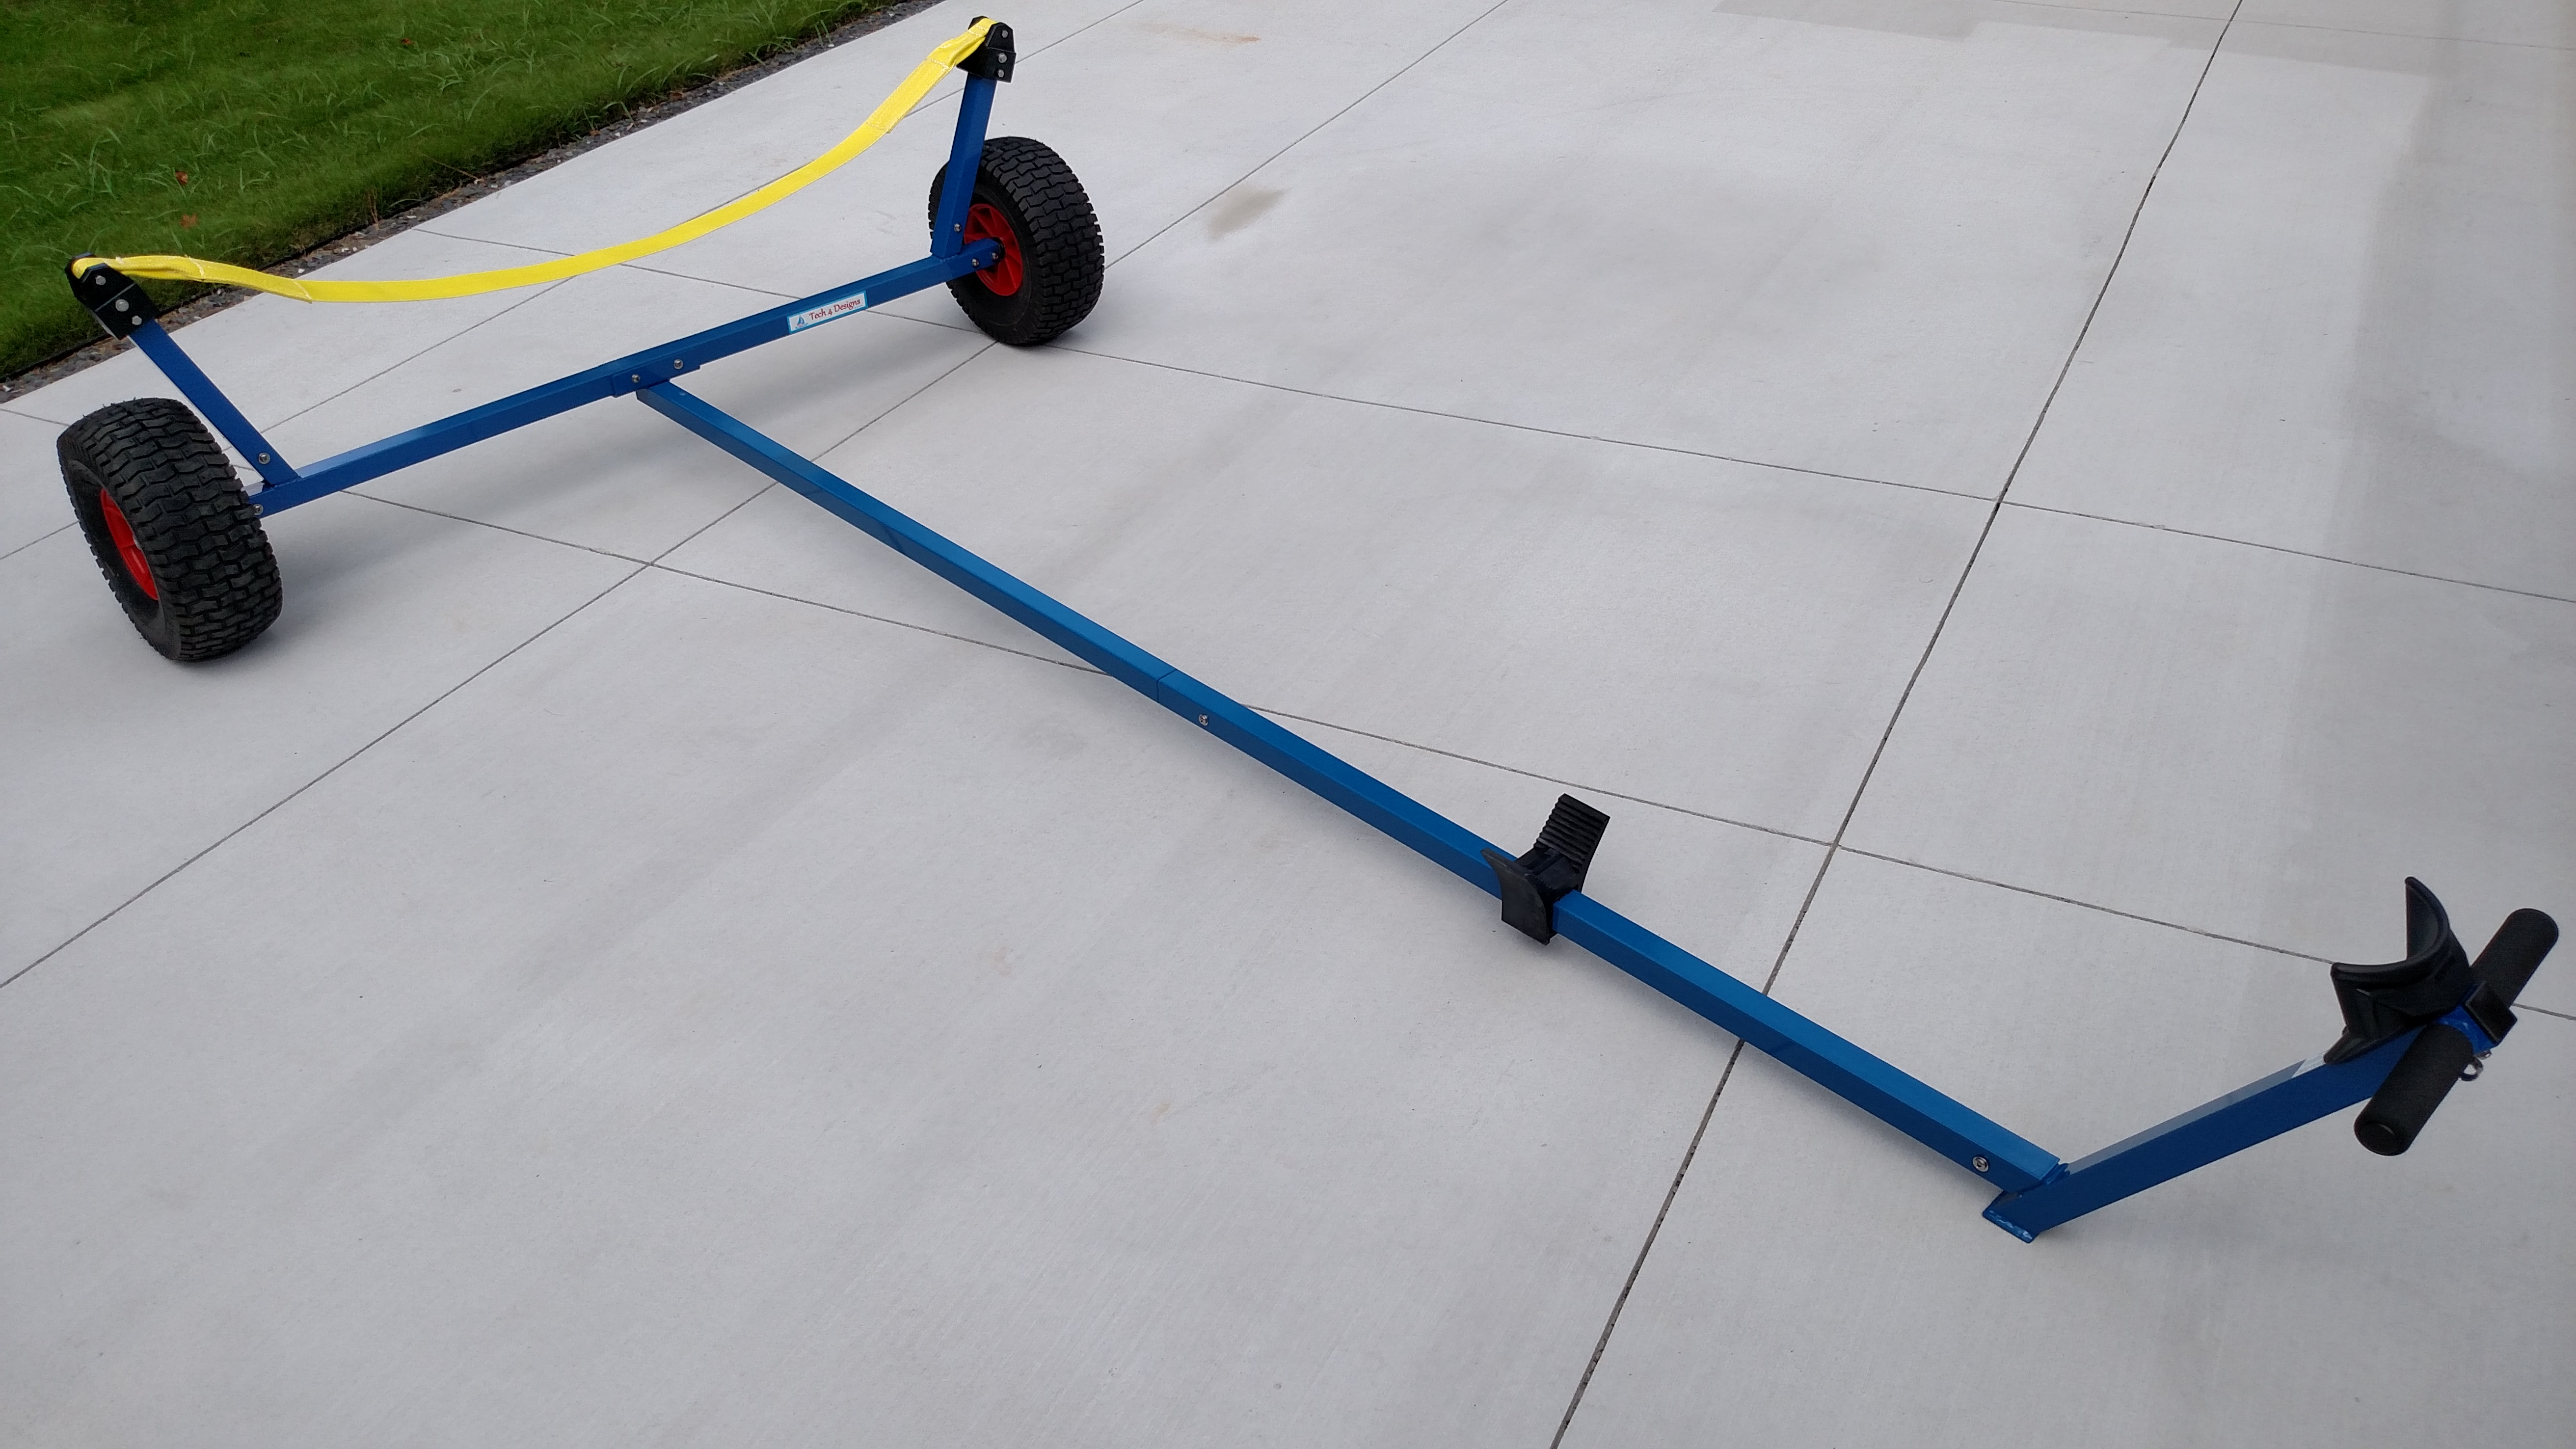 Laser Dolly with Beach Wheels